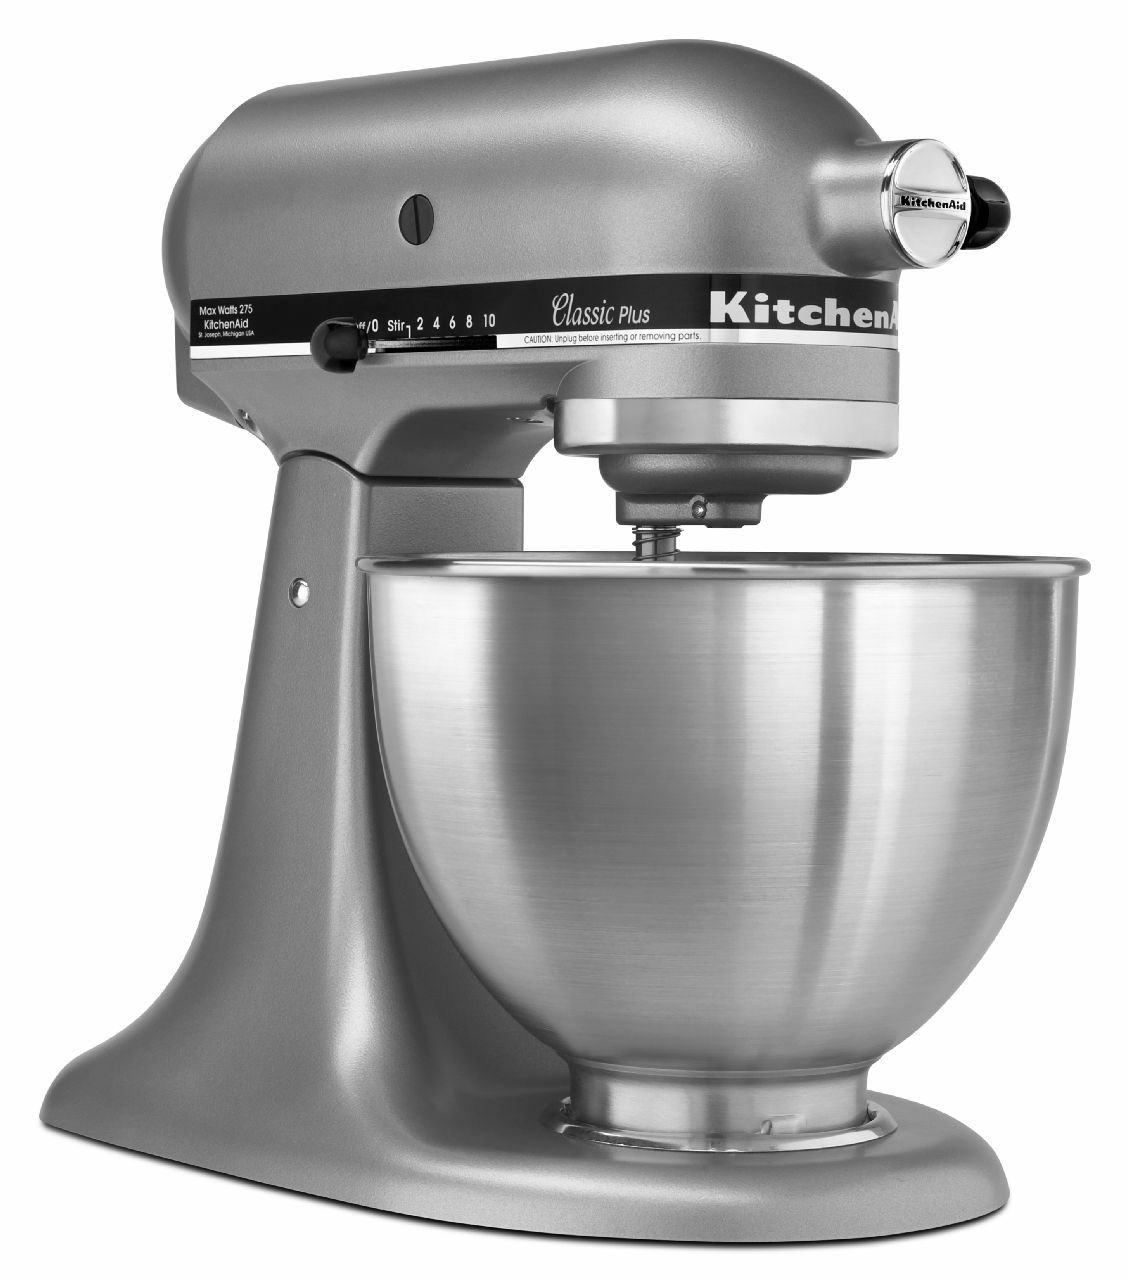 Image Result For Discount Kitchenaid Mixer Attachments